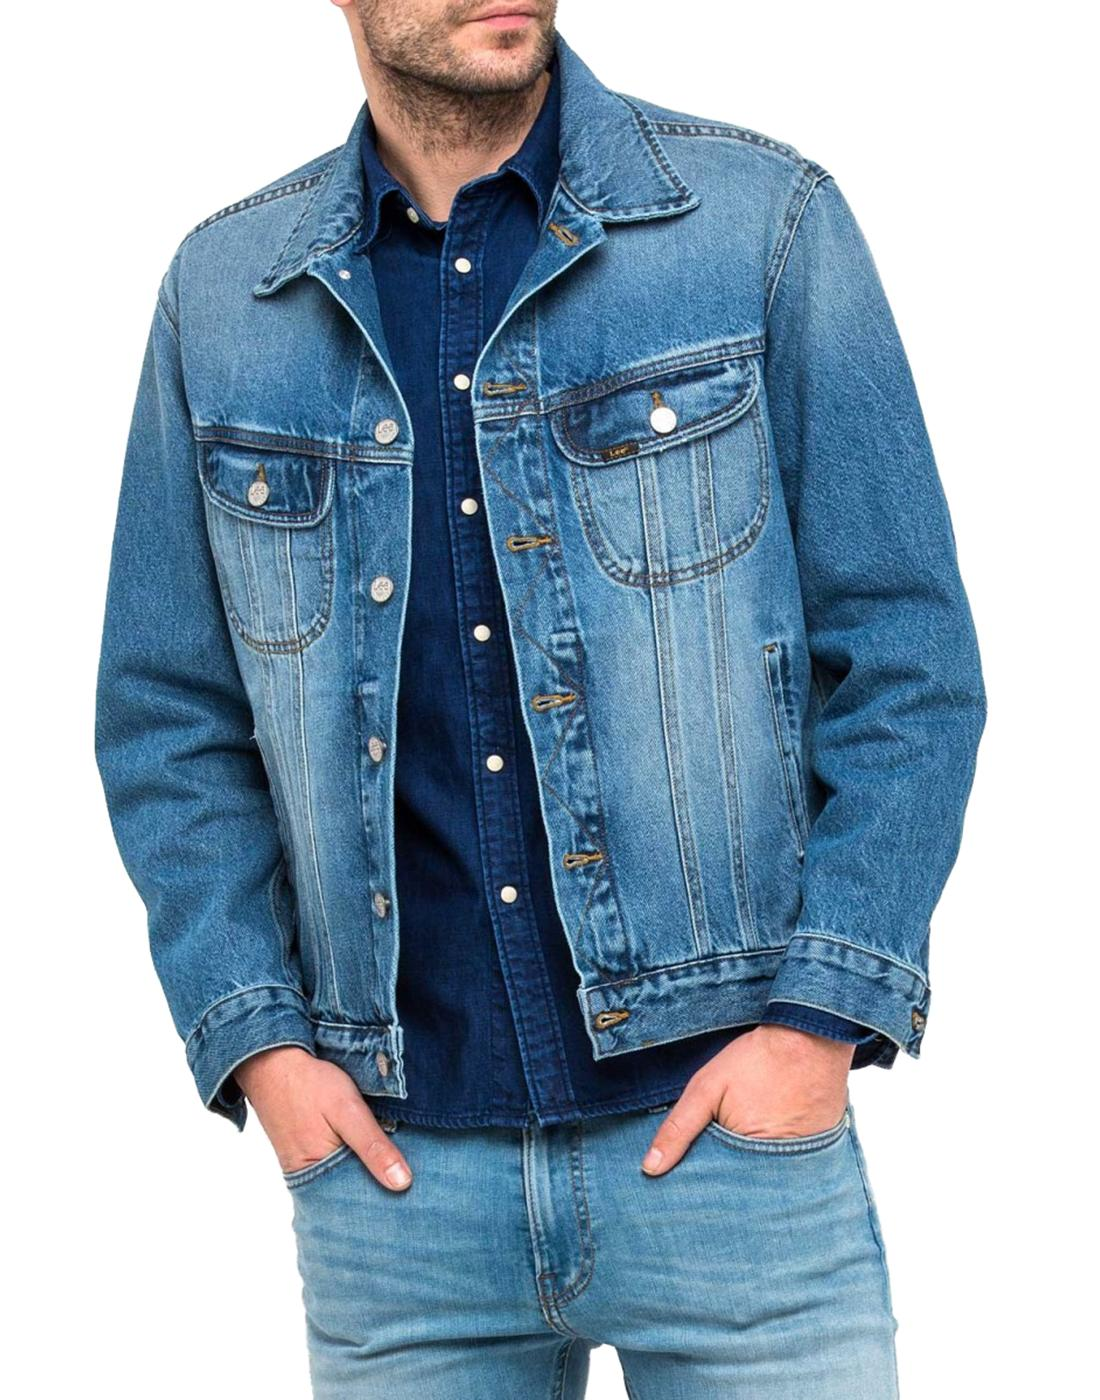 Rider LEE JEANS Retro 70s Rigid Denim Jacket Blue